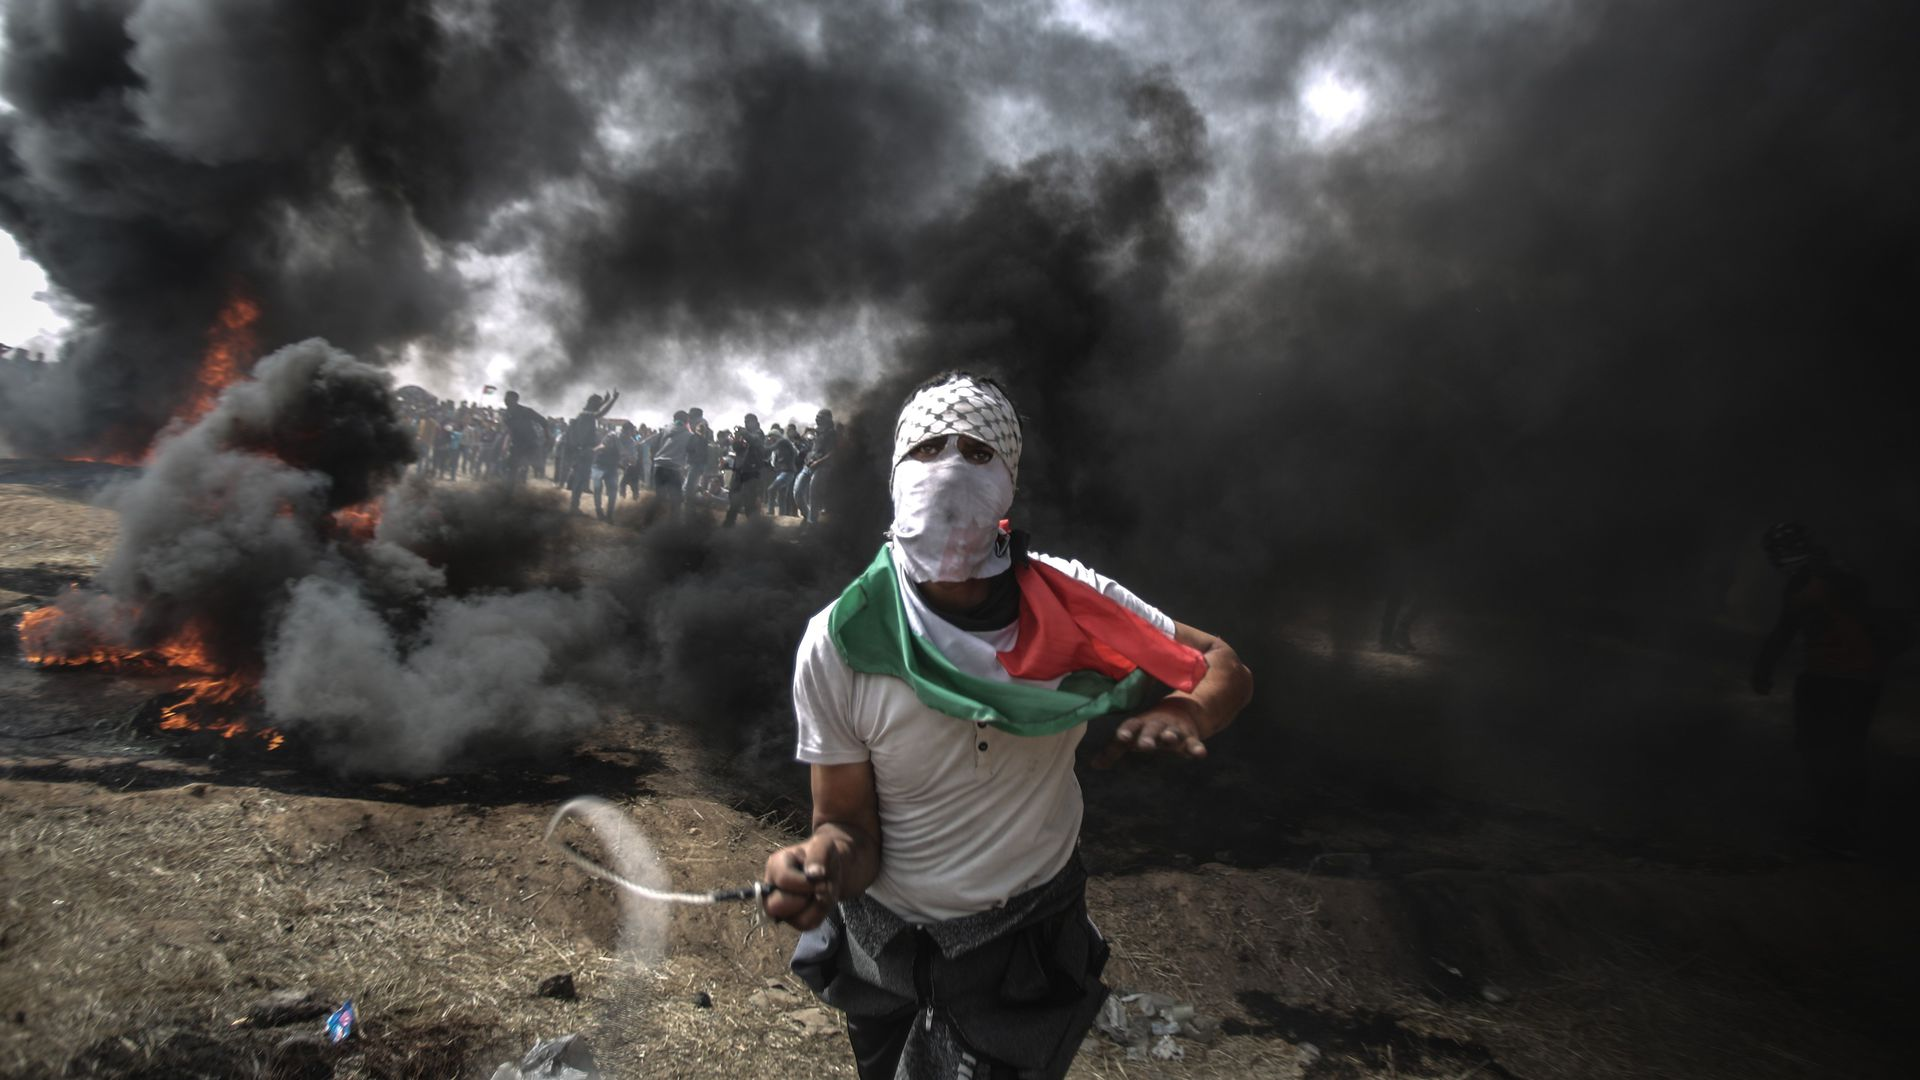 A Palestinian protester at the Gaza-Israel border